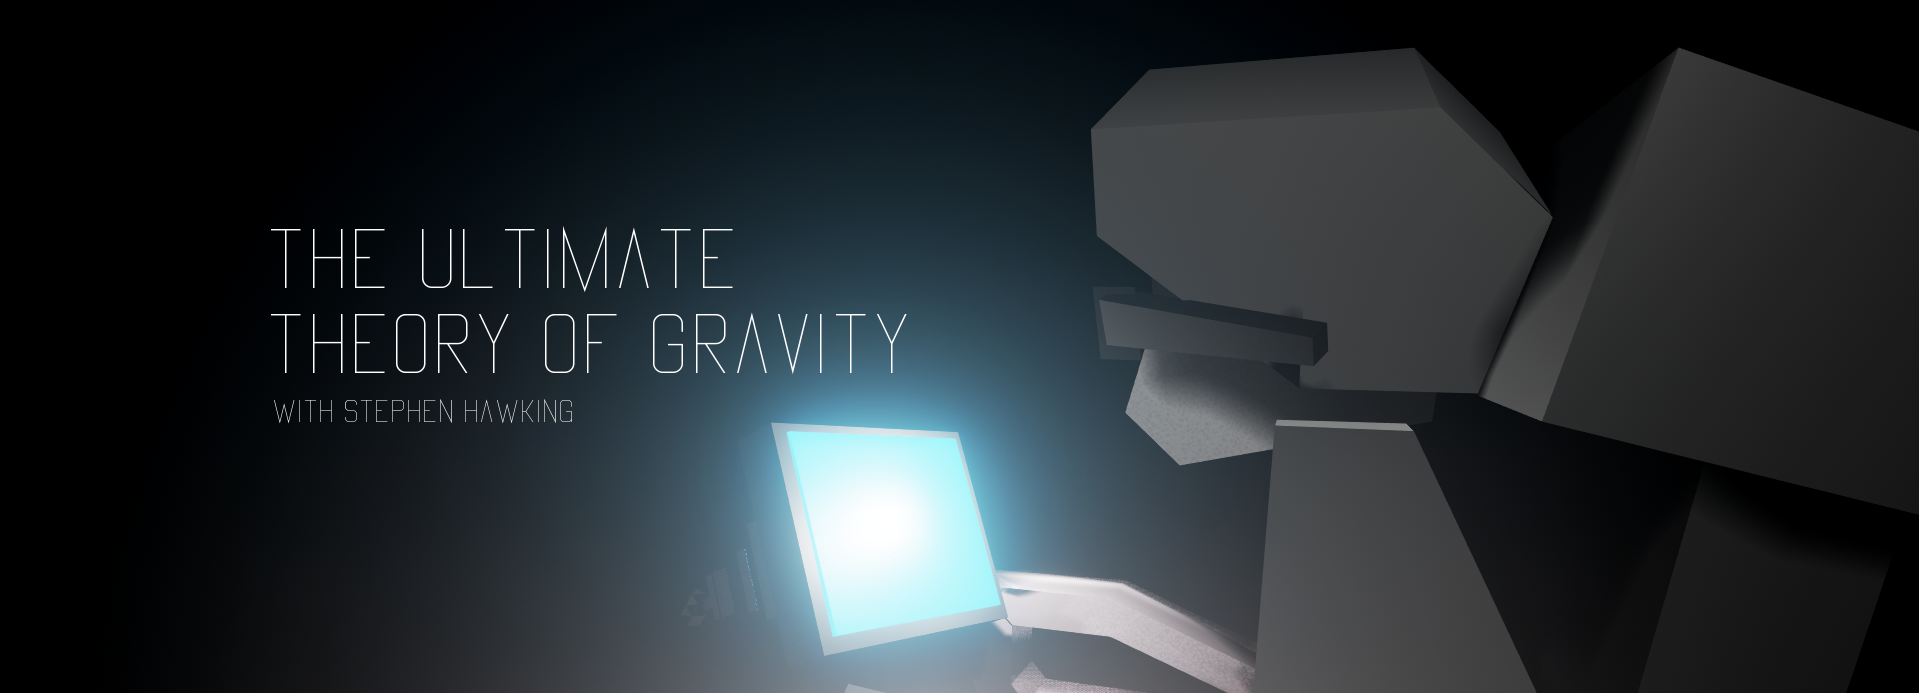 The Ultimate Theory of Gravity